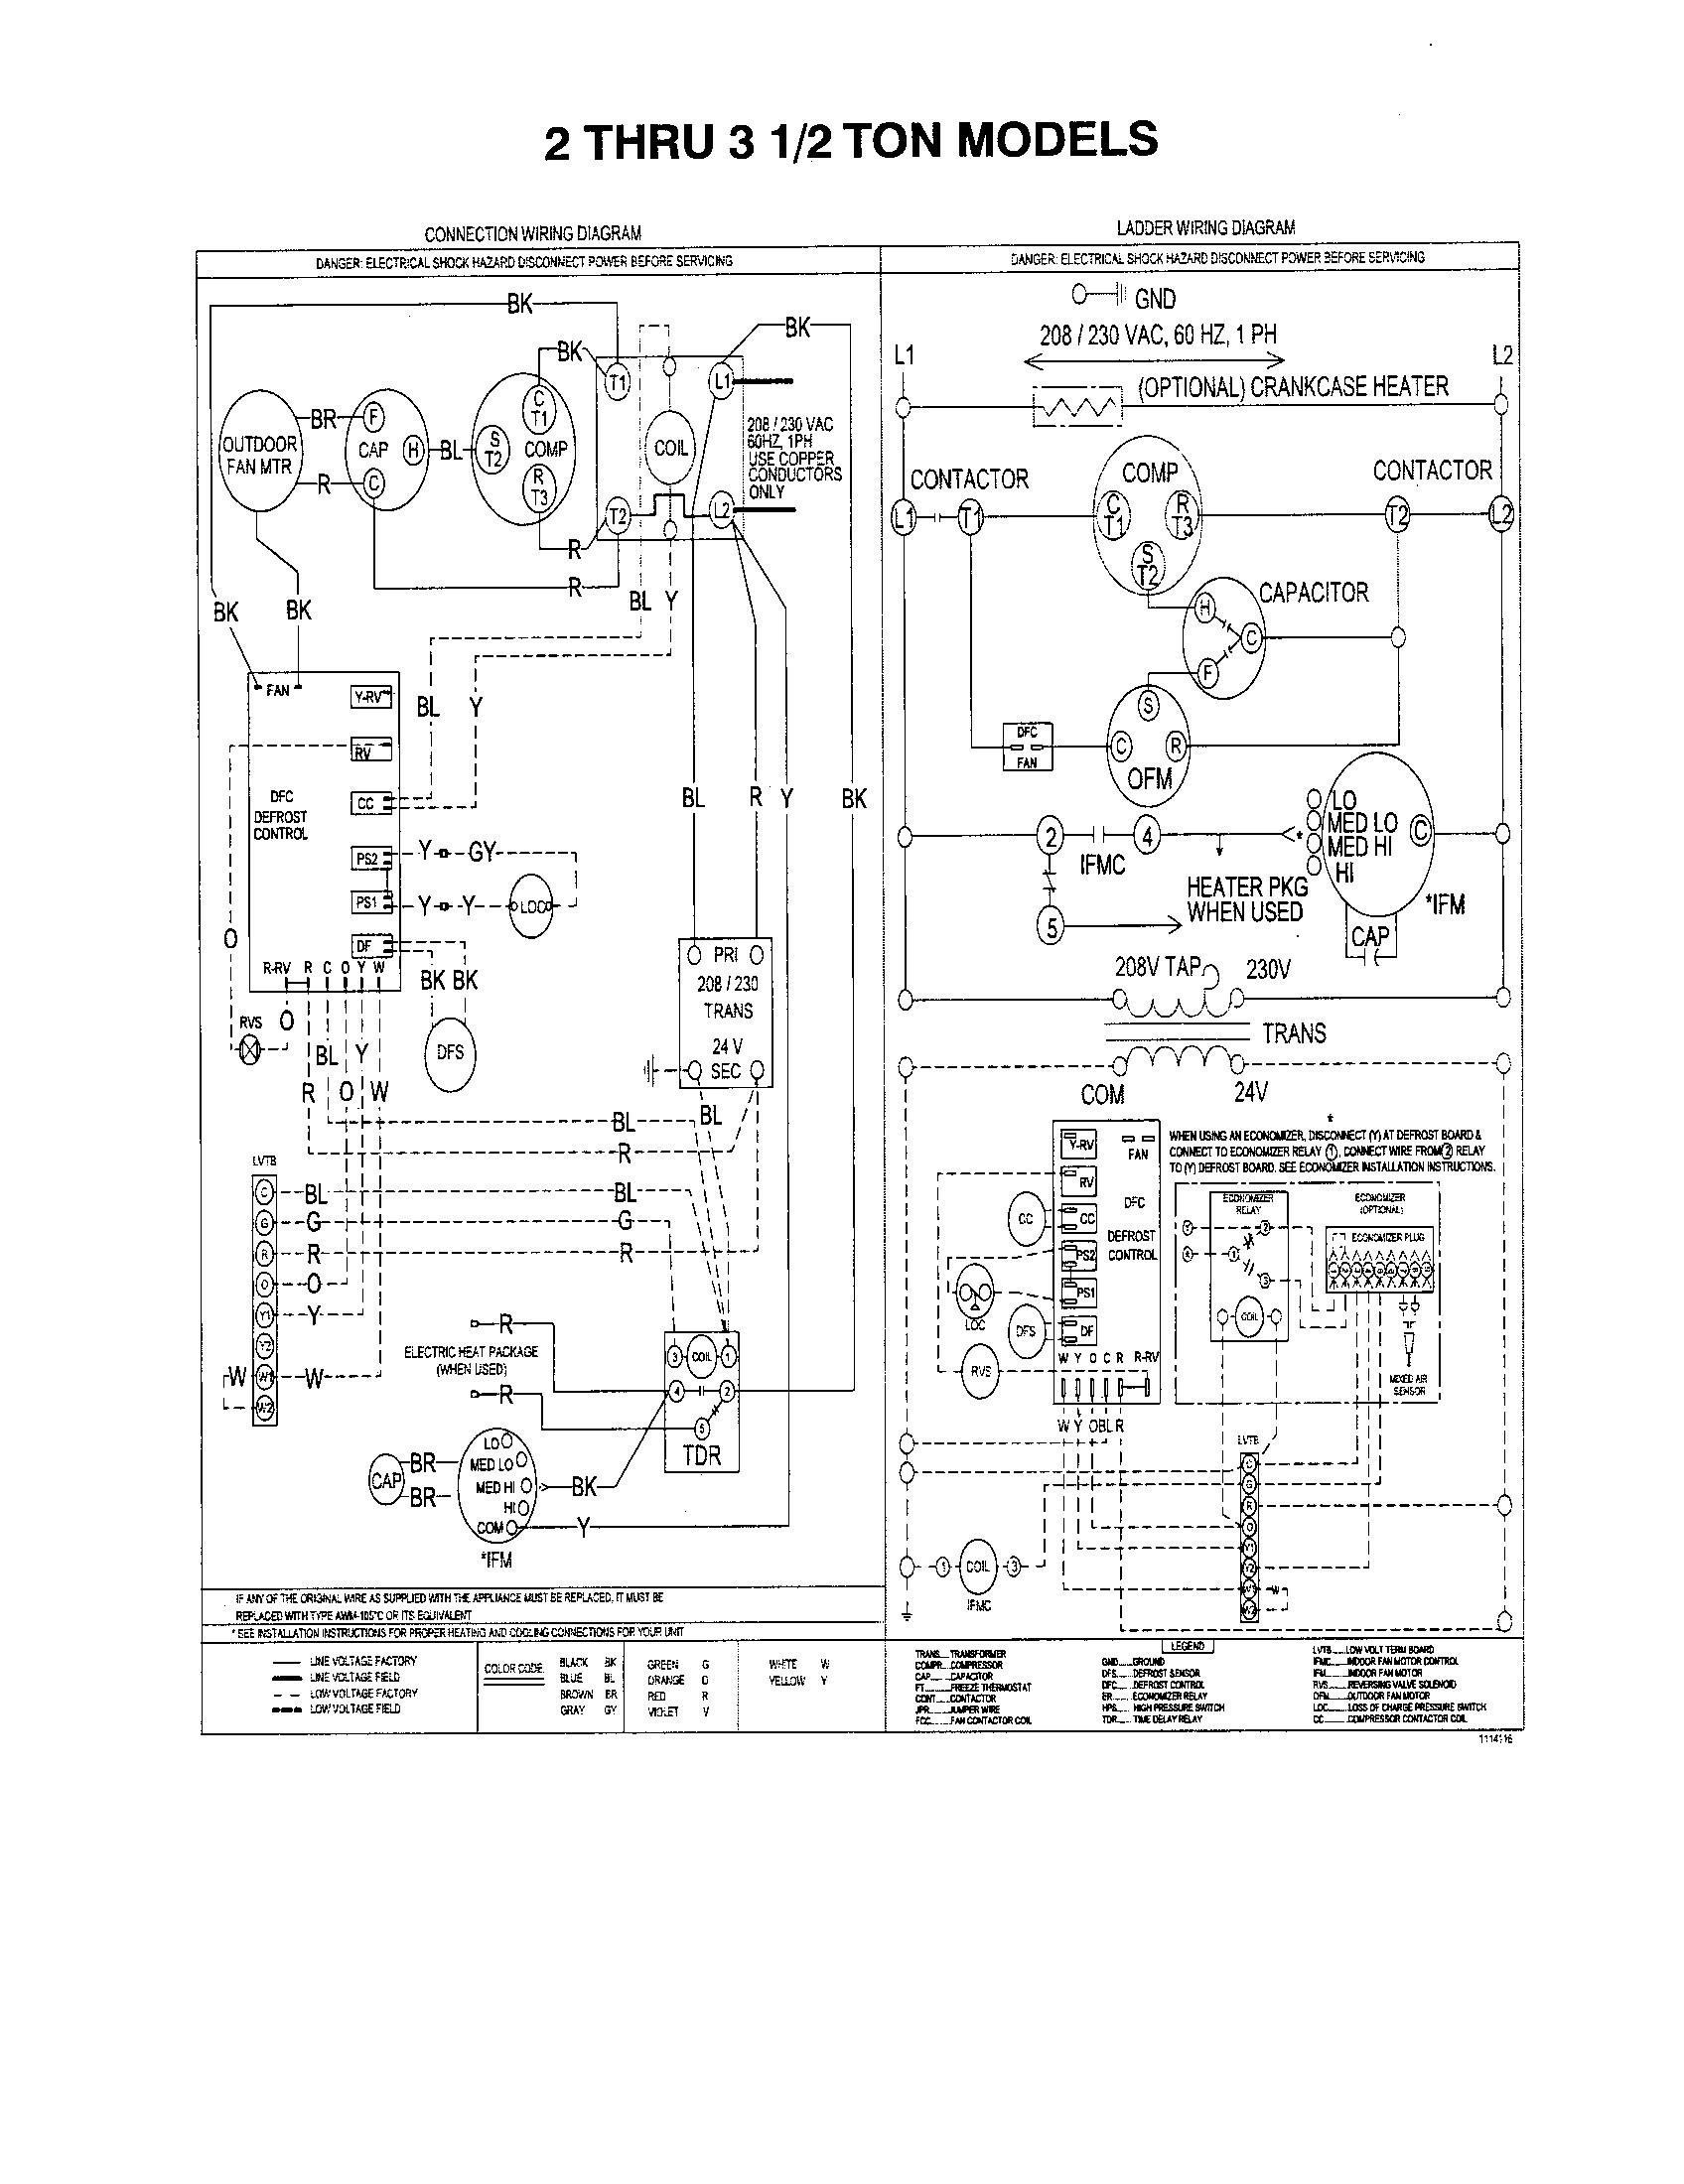 Xe Trane Hvac Wiring Diagrams on trane thermostat wiring color code, trane rooftop ac wiring diagrams, trane air conditioners wiring schematic, trane weathertron wiring, trane heat pumps thermostat wiring, trane wiring diagrams model, trane hvac wiring diagrams, trane furnace wiring,